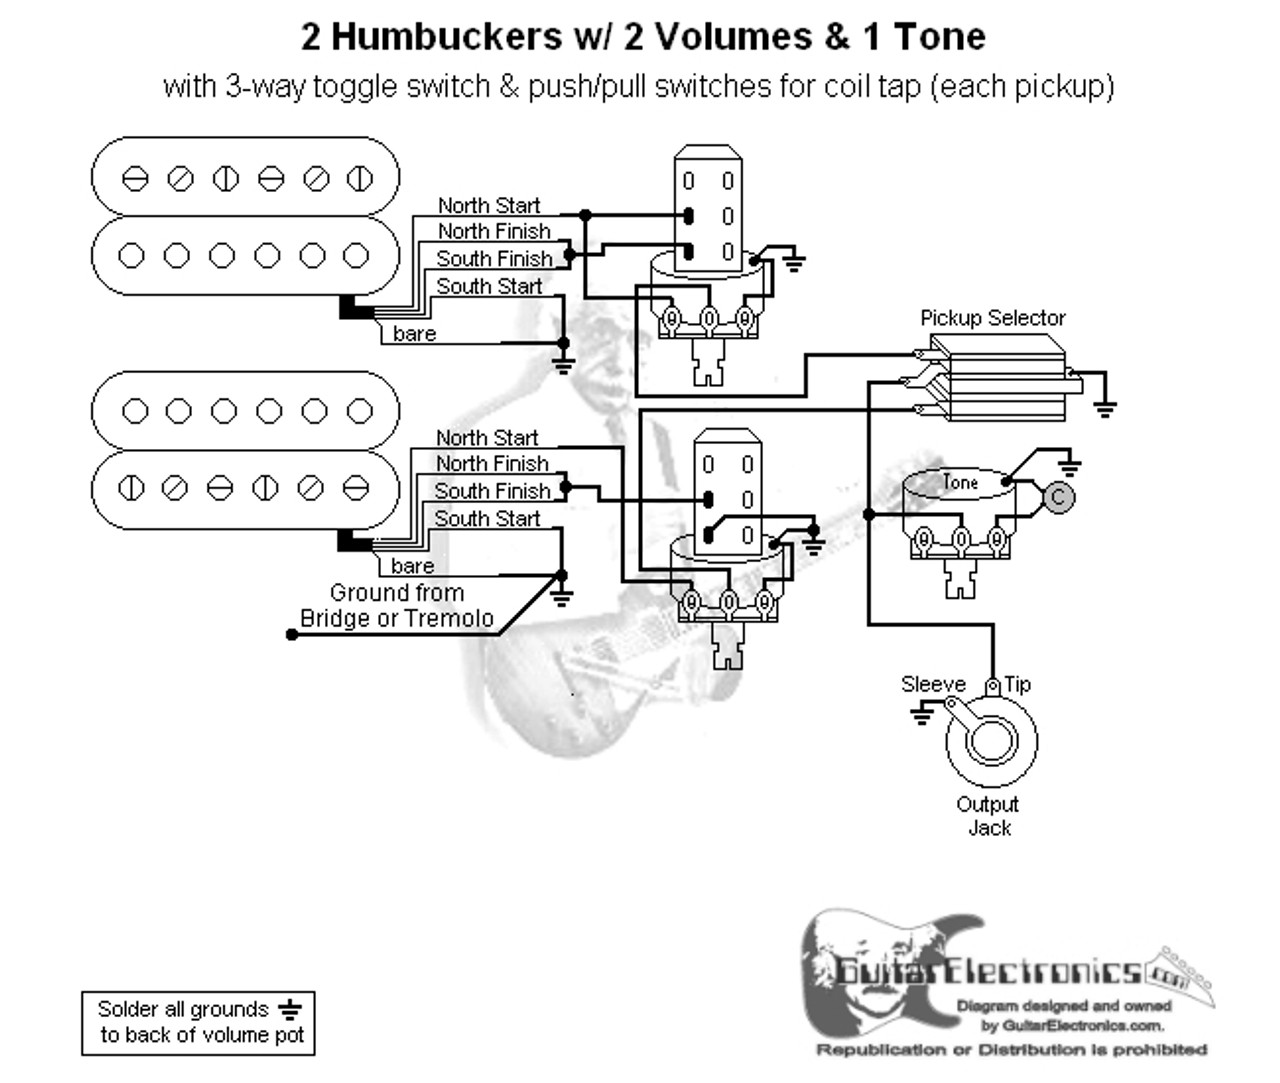 small resolution of 2 humbuckers 3 way toggle switch 2 volumes 1 tone individual coil diagram 2 humbuckers 3way toggle switch 2 volumes 1 tone coil tap